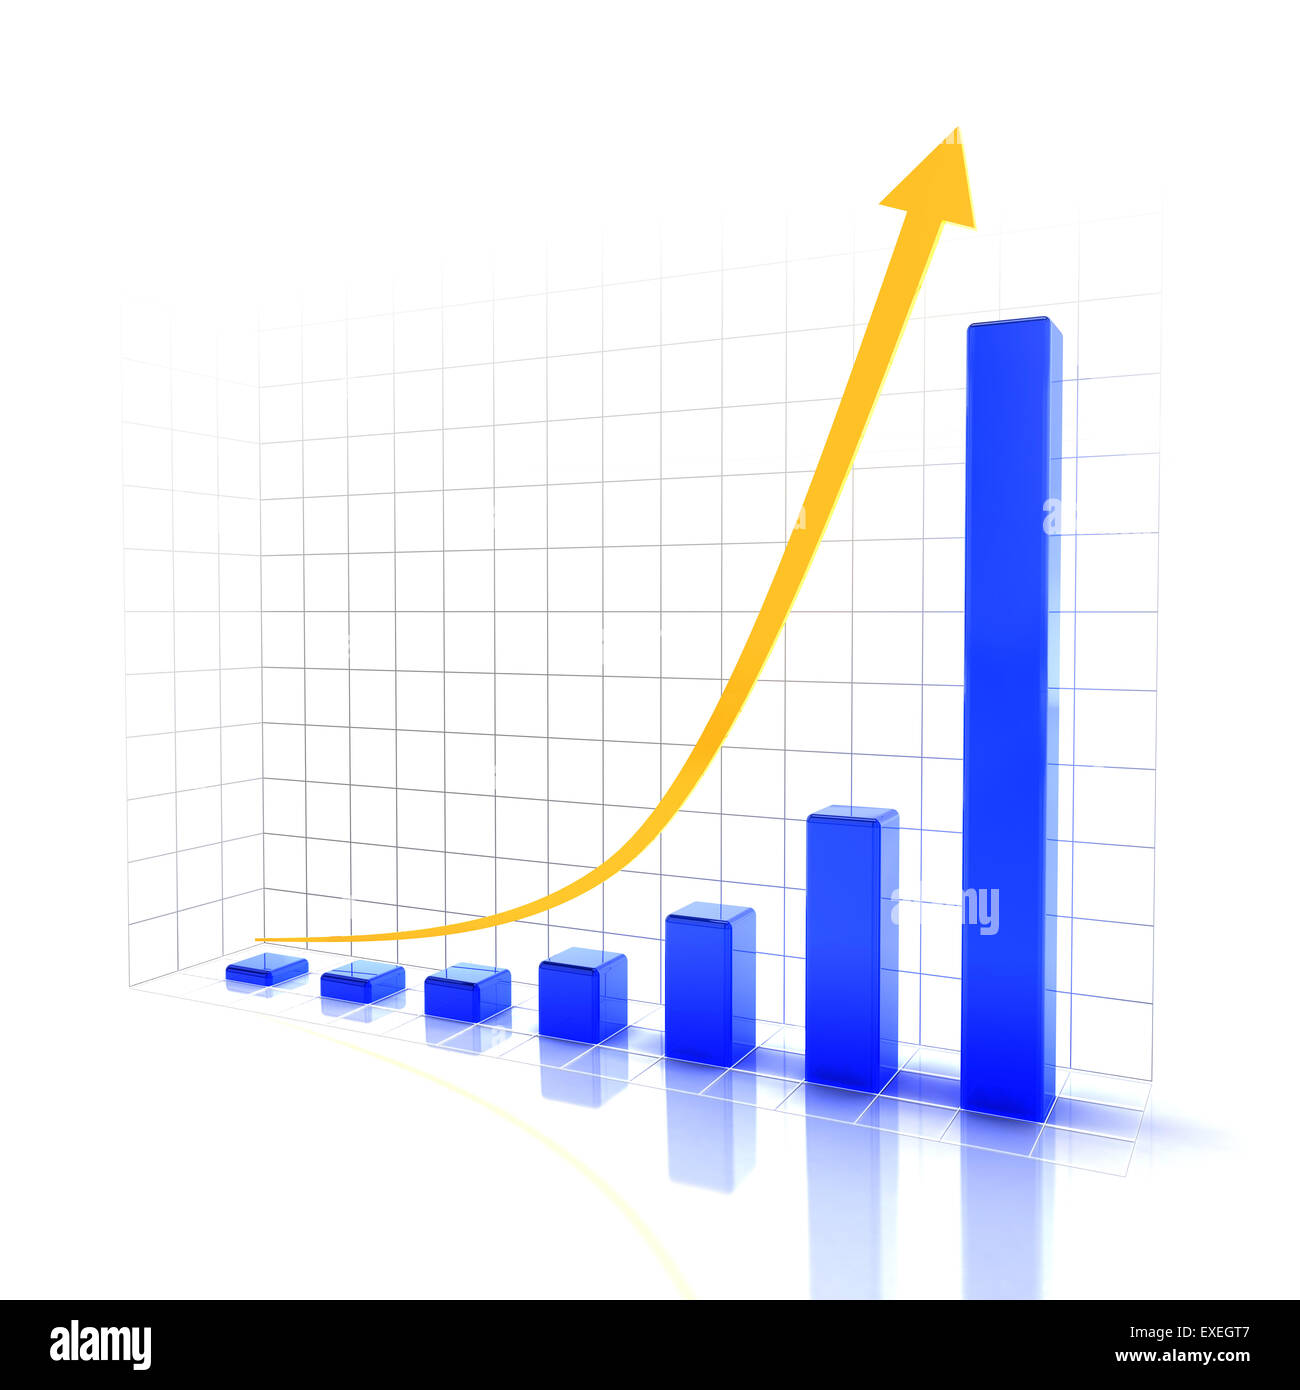 Chart showing future rising trend - Stock Image